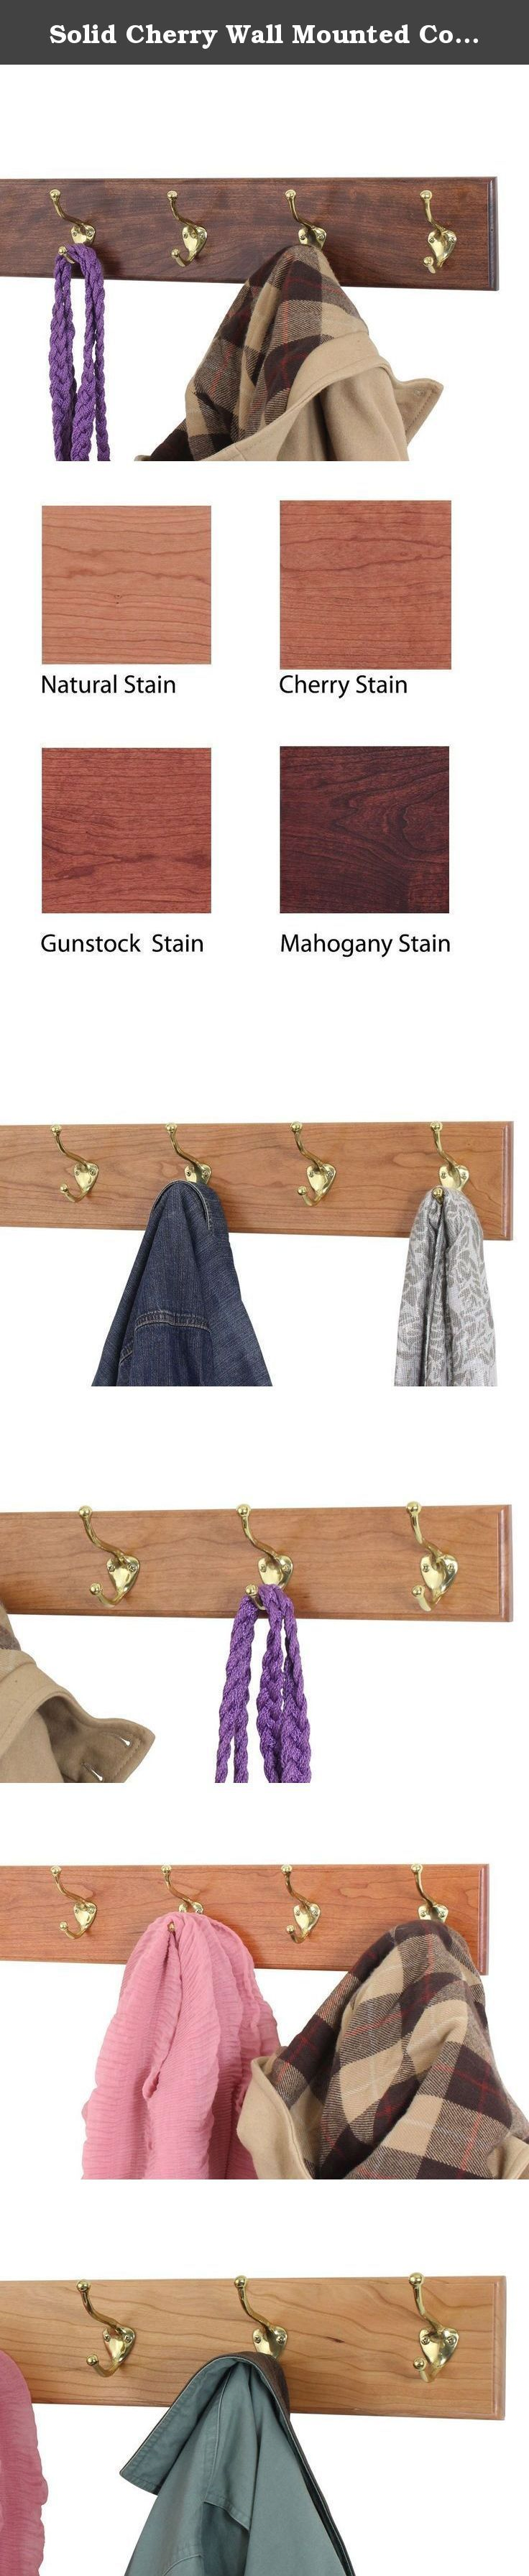 1000 ideas about wall mounted coat rack on pinterest wall coat rack tree coat rack and. Black Bedroom Furniture Sets. Home Design Ideas